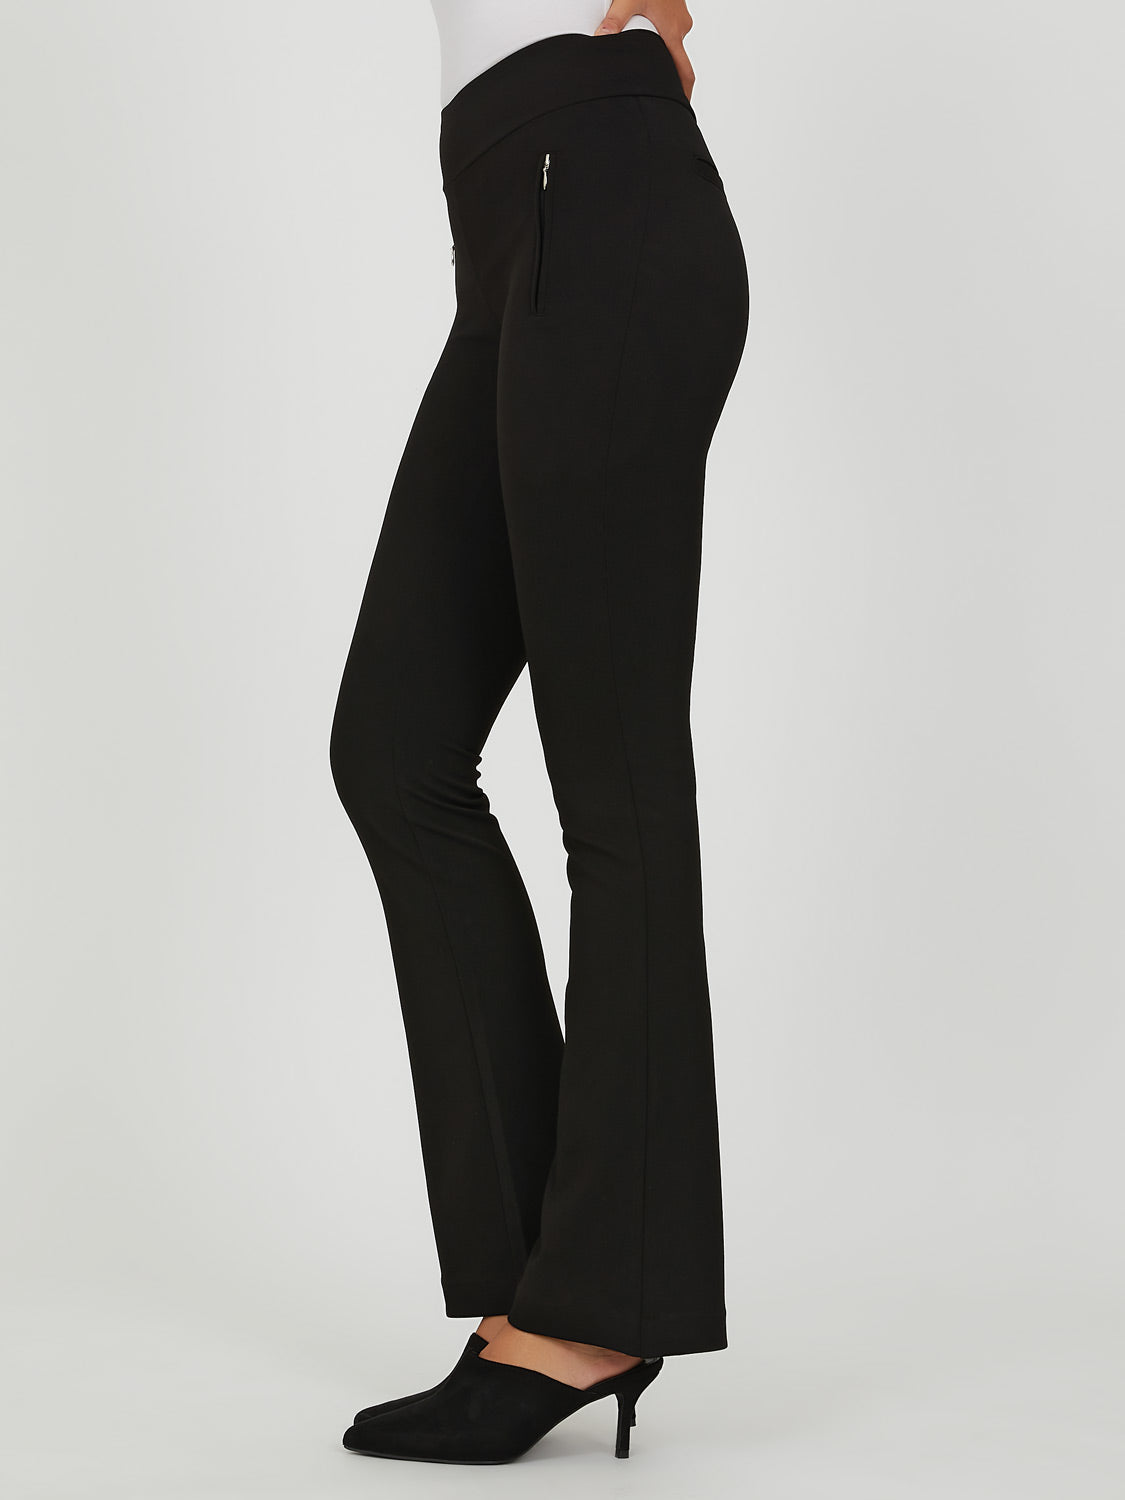 Crepe Knit Flare Pant